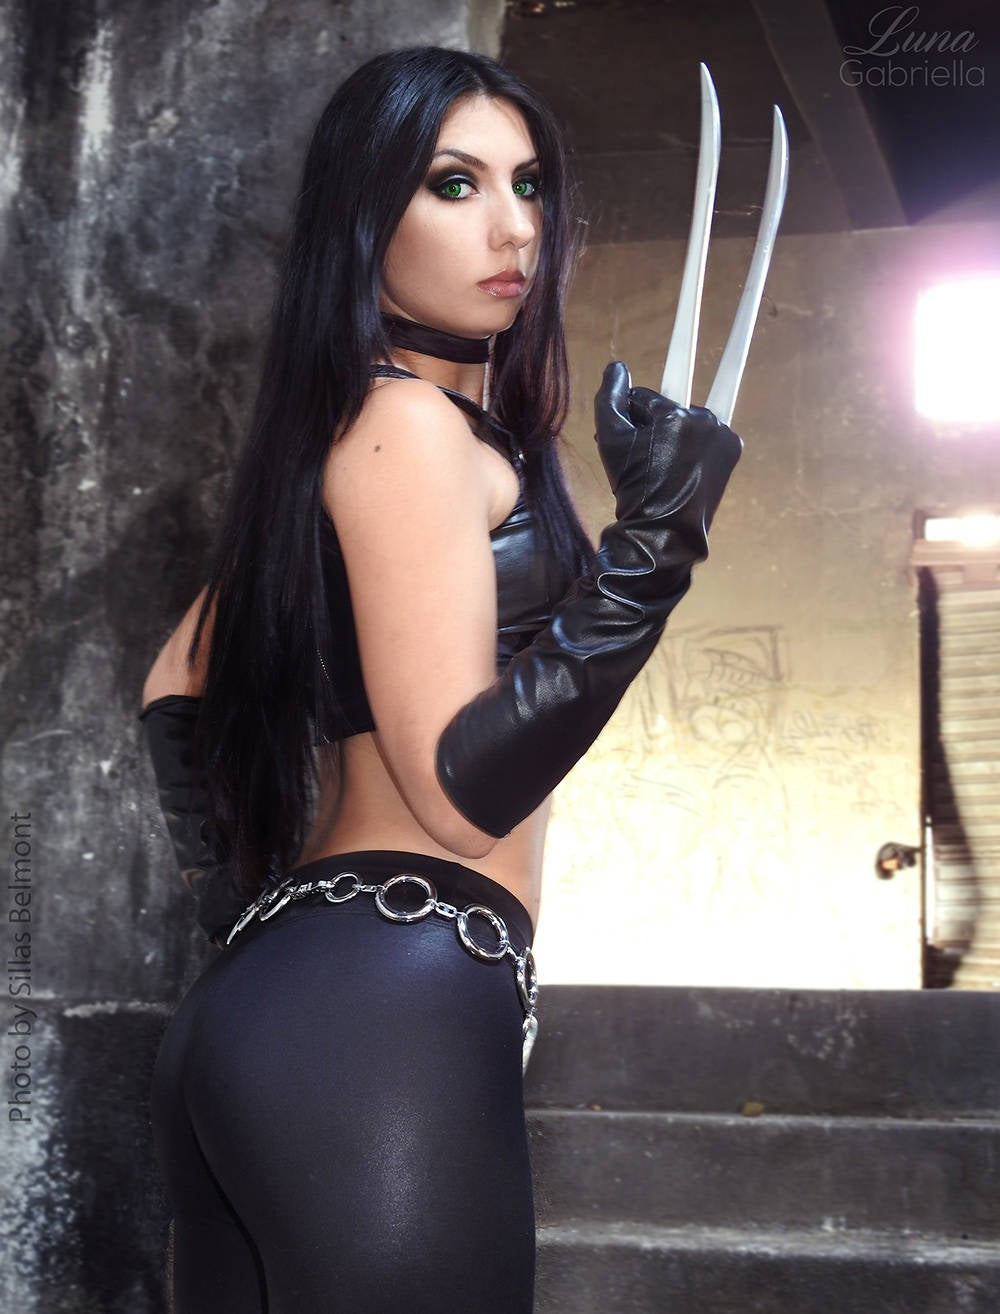 X-23-Fan-Cosplay-Friday-Luna-Gabriela-Sillas-Belmont05